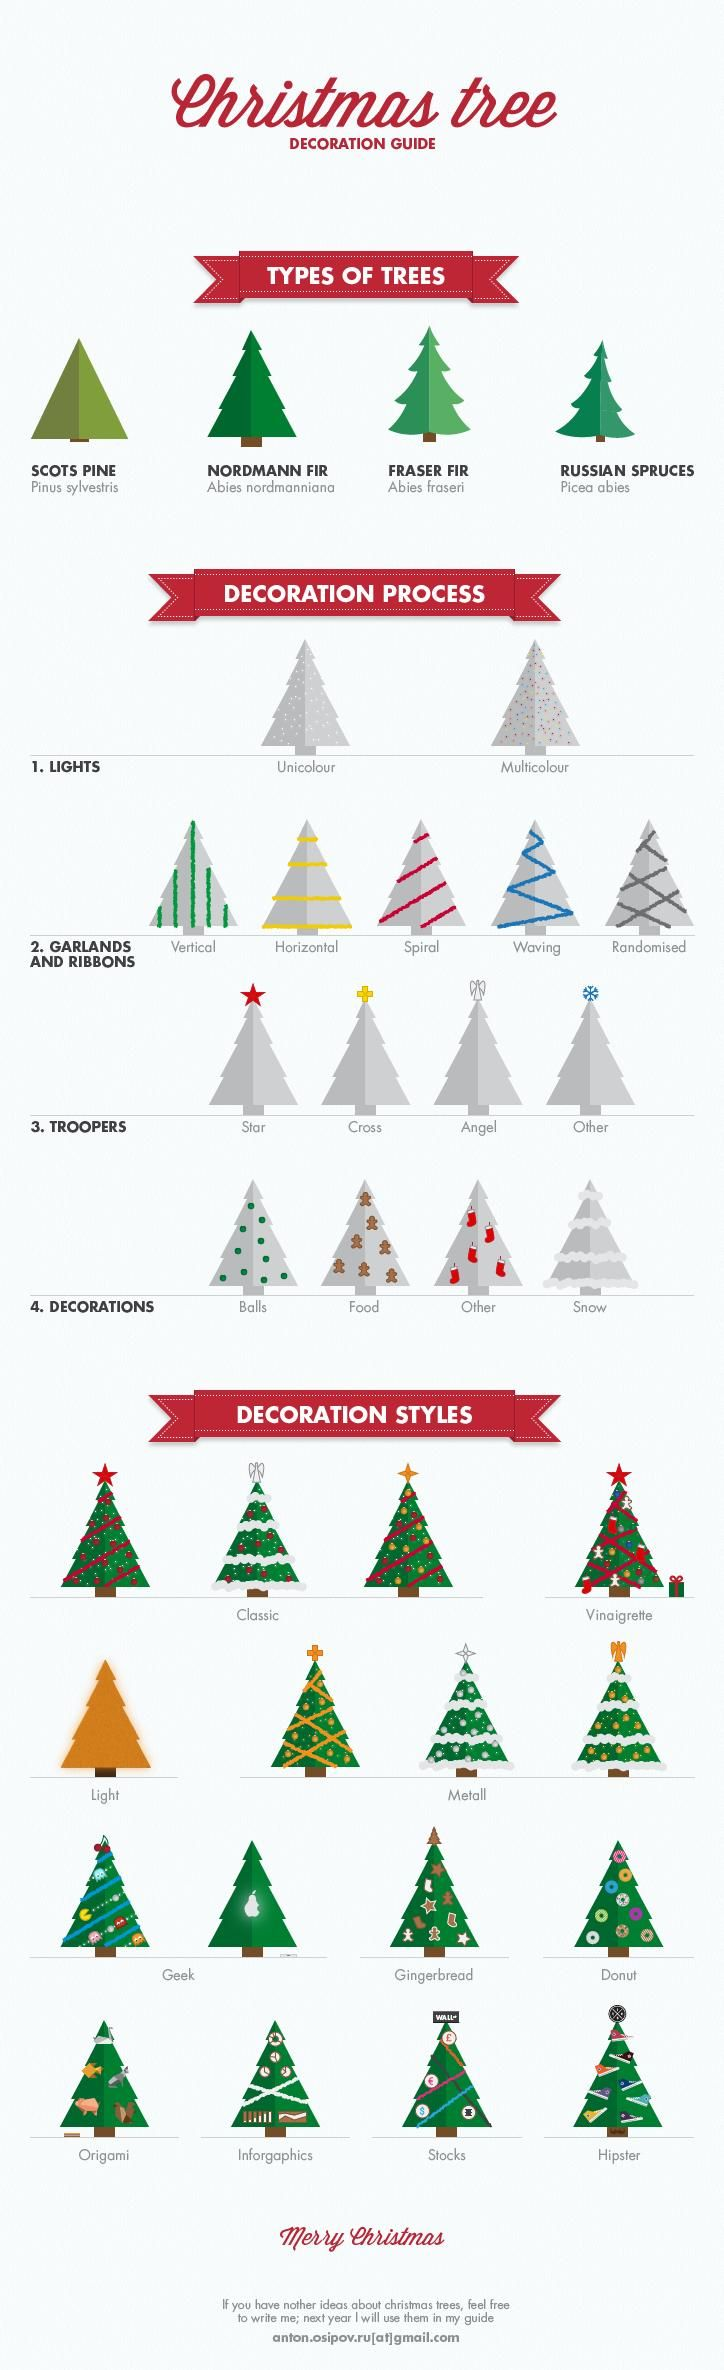 Christmas Tree Decoration Guide Infographic Christmas Tree Decorations Christmas Tree Farm Inflatable Christmas Decorations